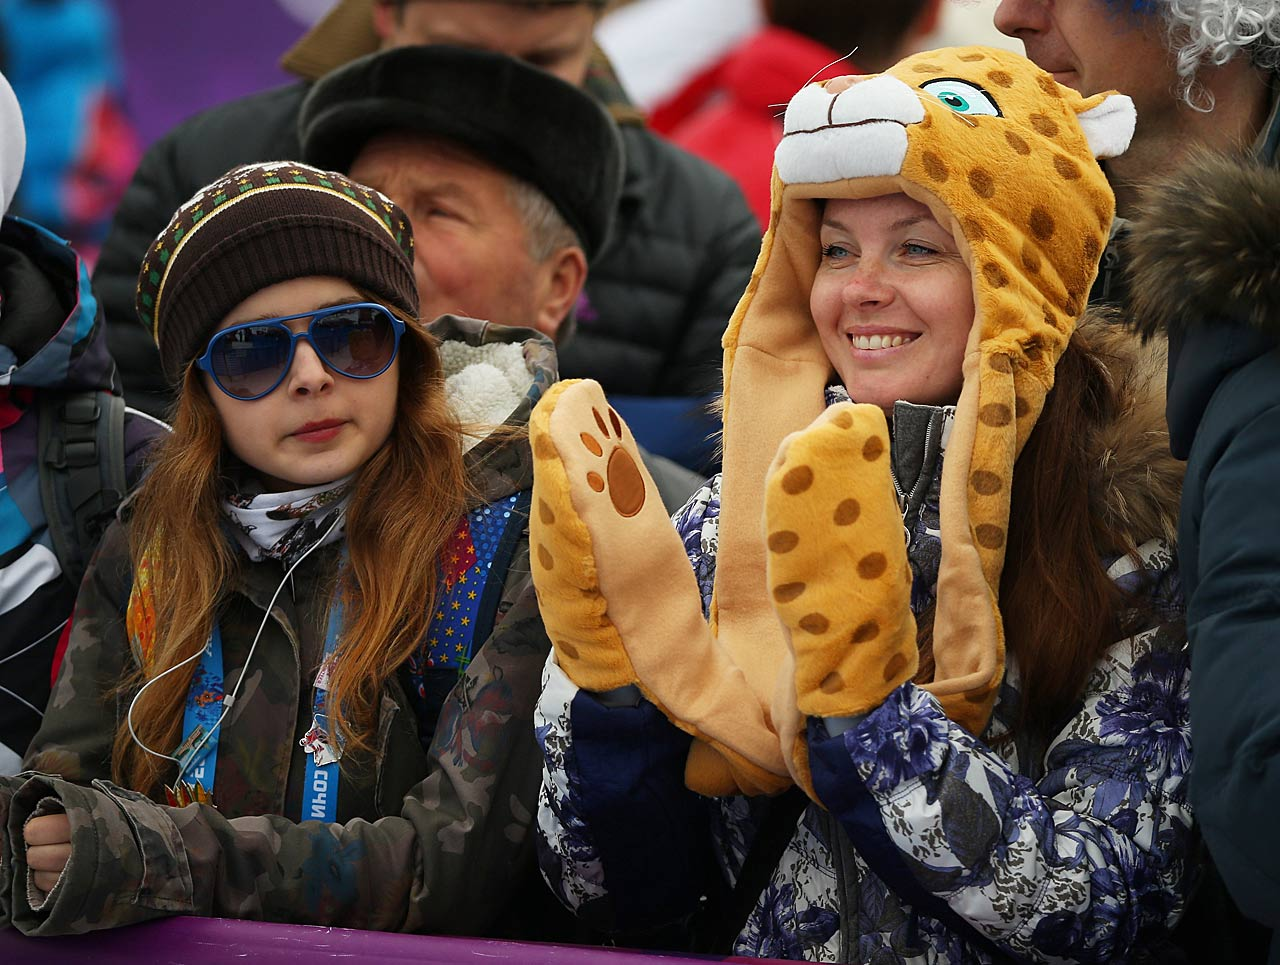 Fans look on during the Freestyle Skiing Women's Ski Slopestyle Finals.